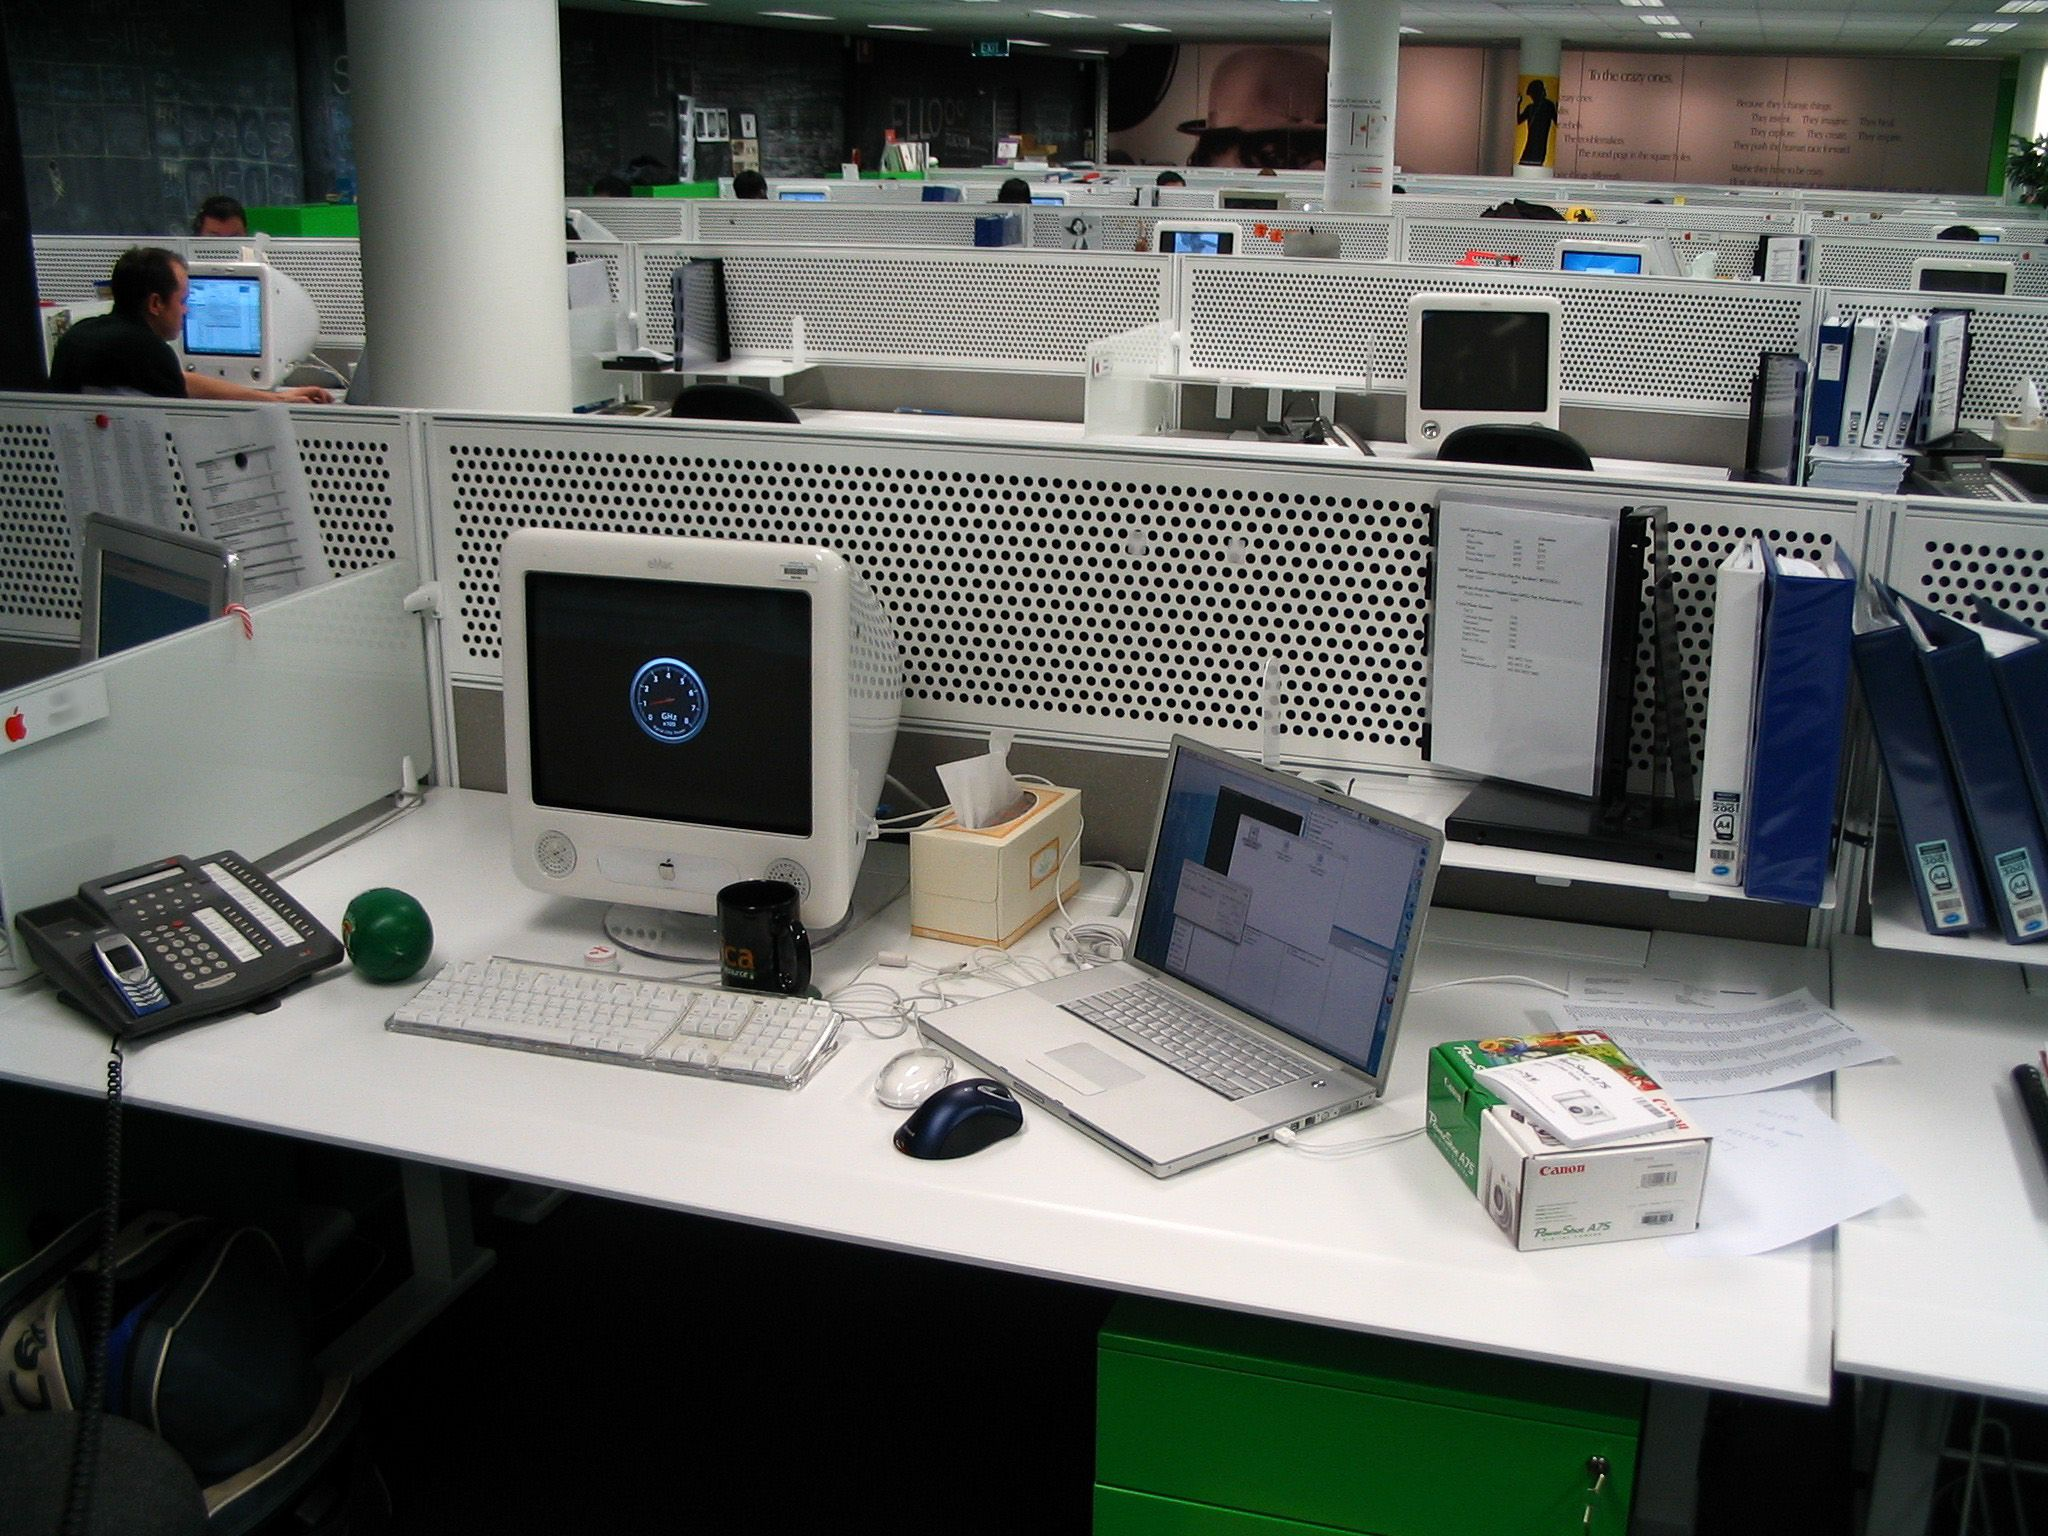 "A photo of my desk at work in a call centre. The same 17"" PowerBook G4 and PowerShot box are visible, but next to it is my work machine, an eMac, with a black Ars Technica mug in front of it. To the left of the eMac is a grey call centre phone, with my mobile phone sitting on top of it."